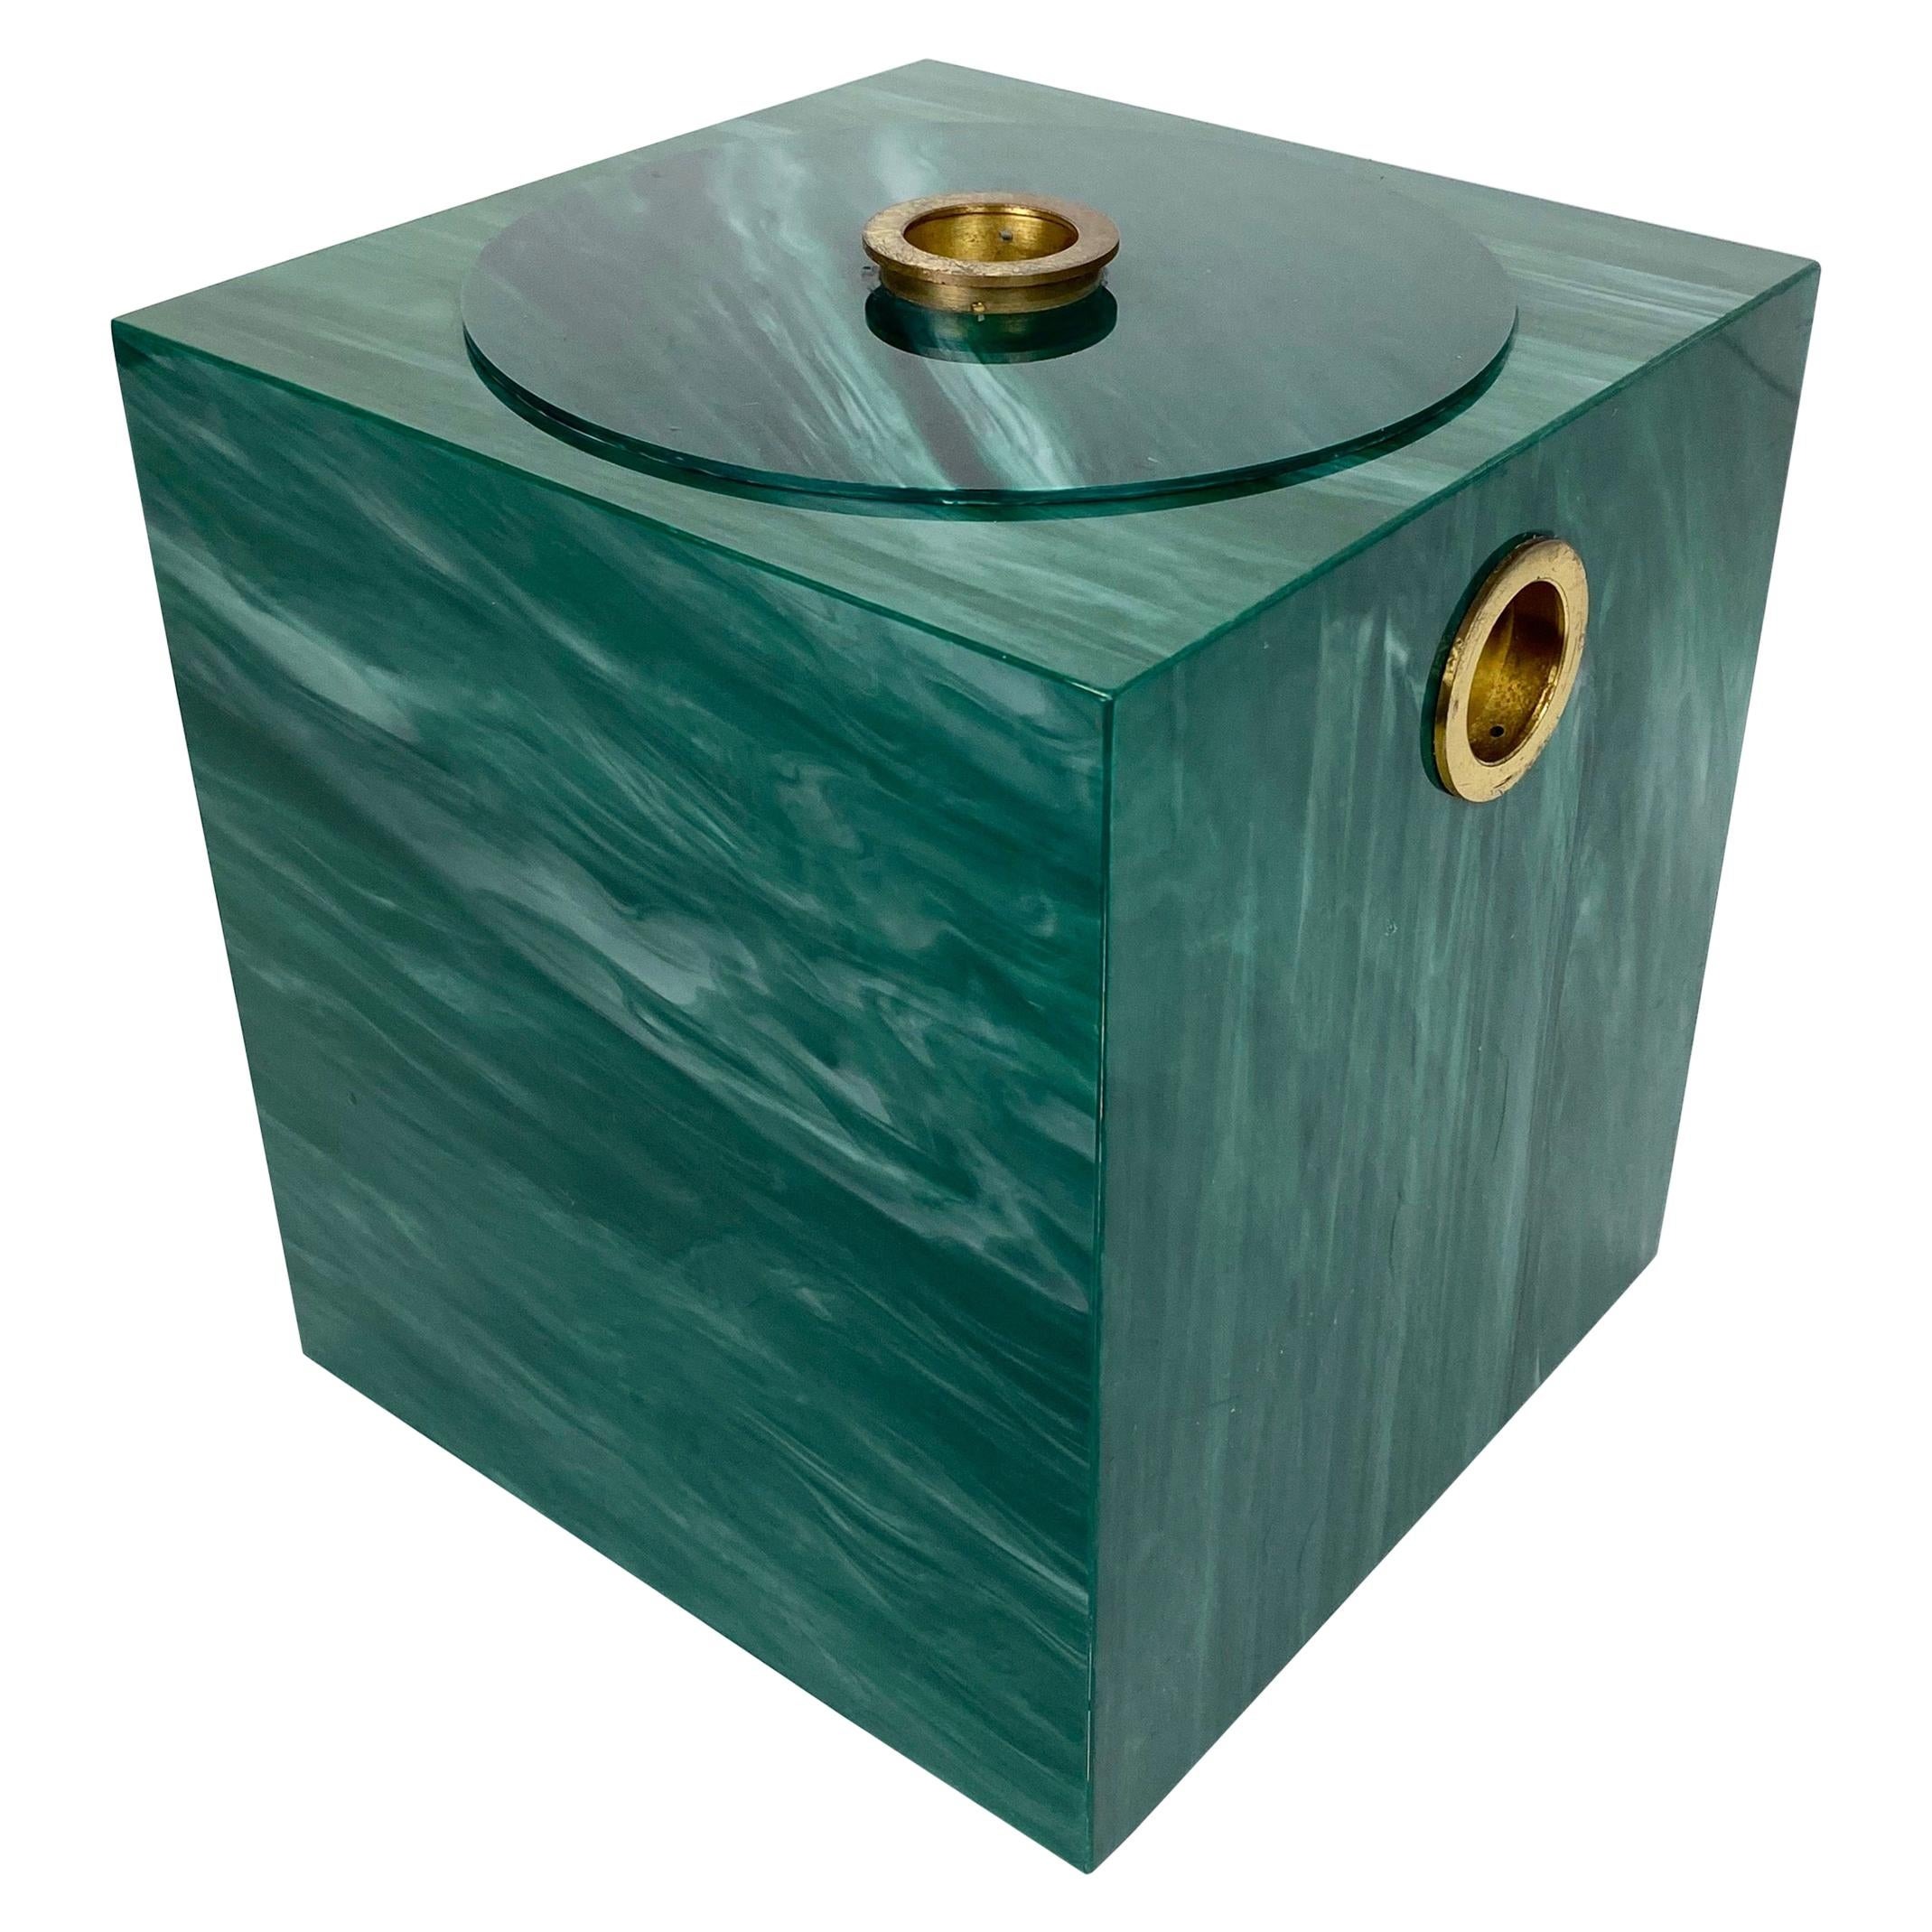 Ice Bucket Green Marble Effect and Brass, Italy, 1970s